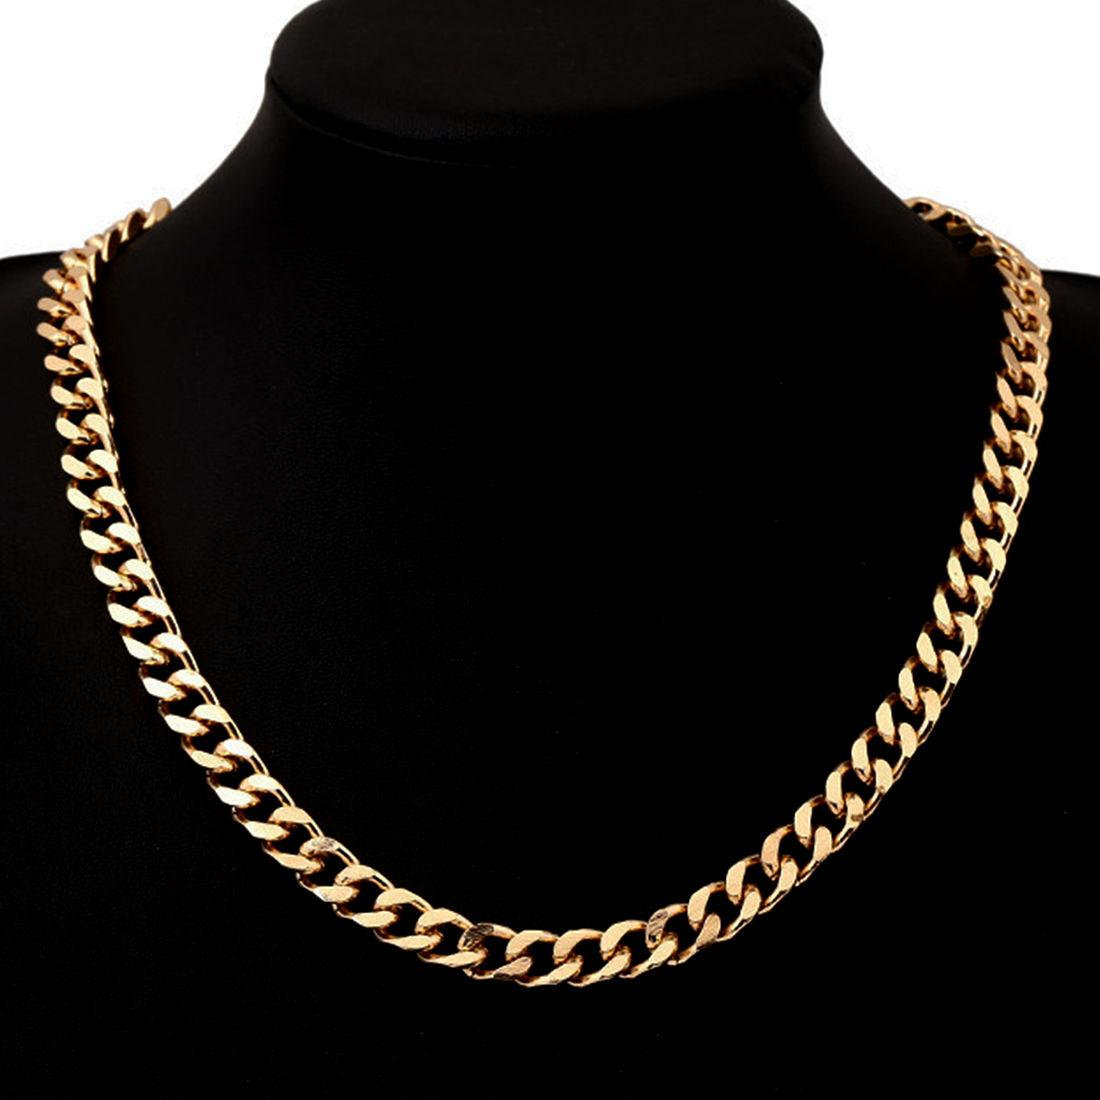 product cuban style necklace detail fashion design wide chain men link mens new hip hop for gold